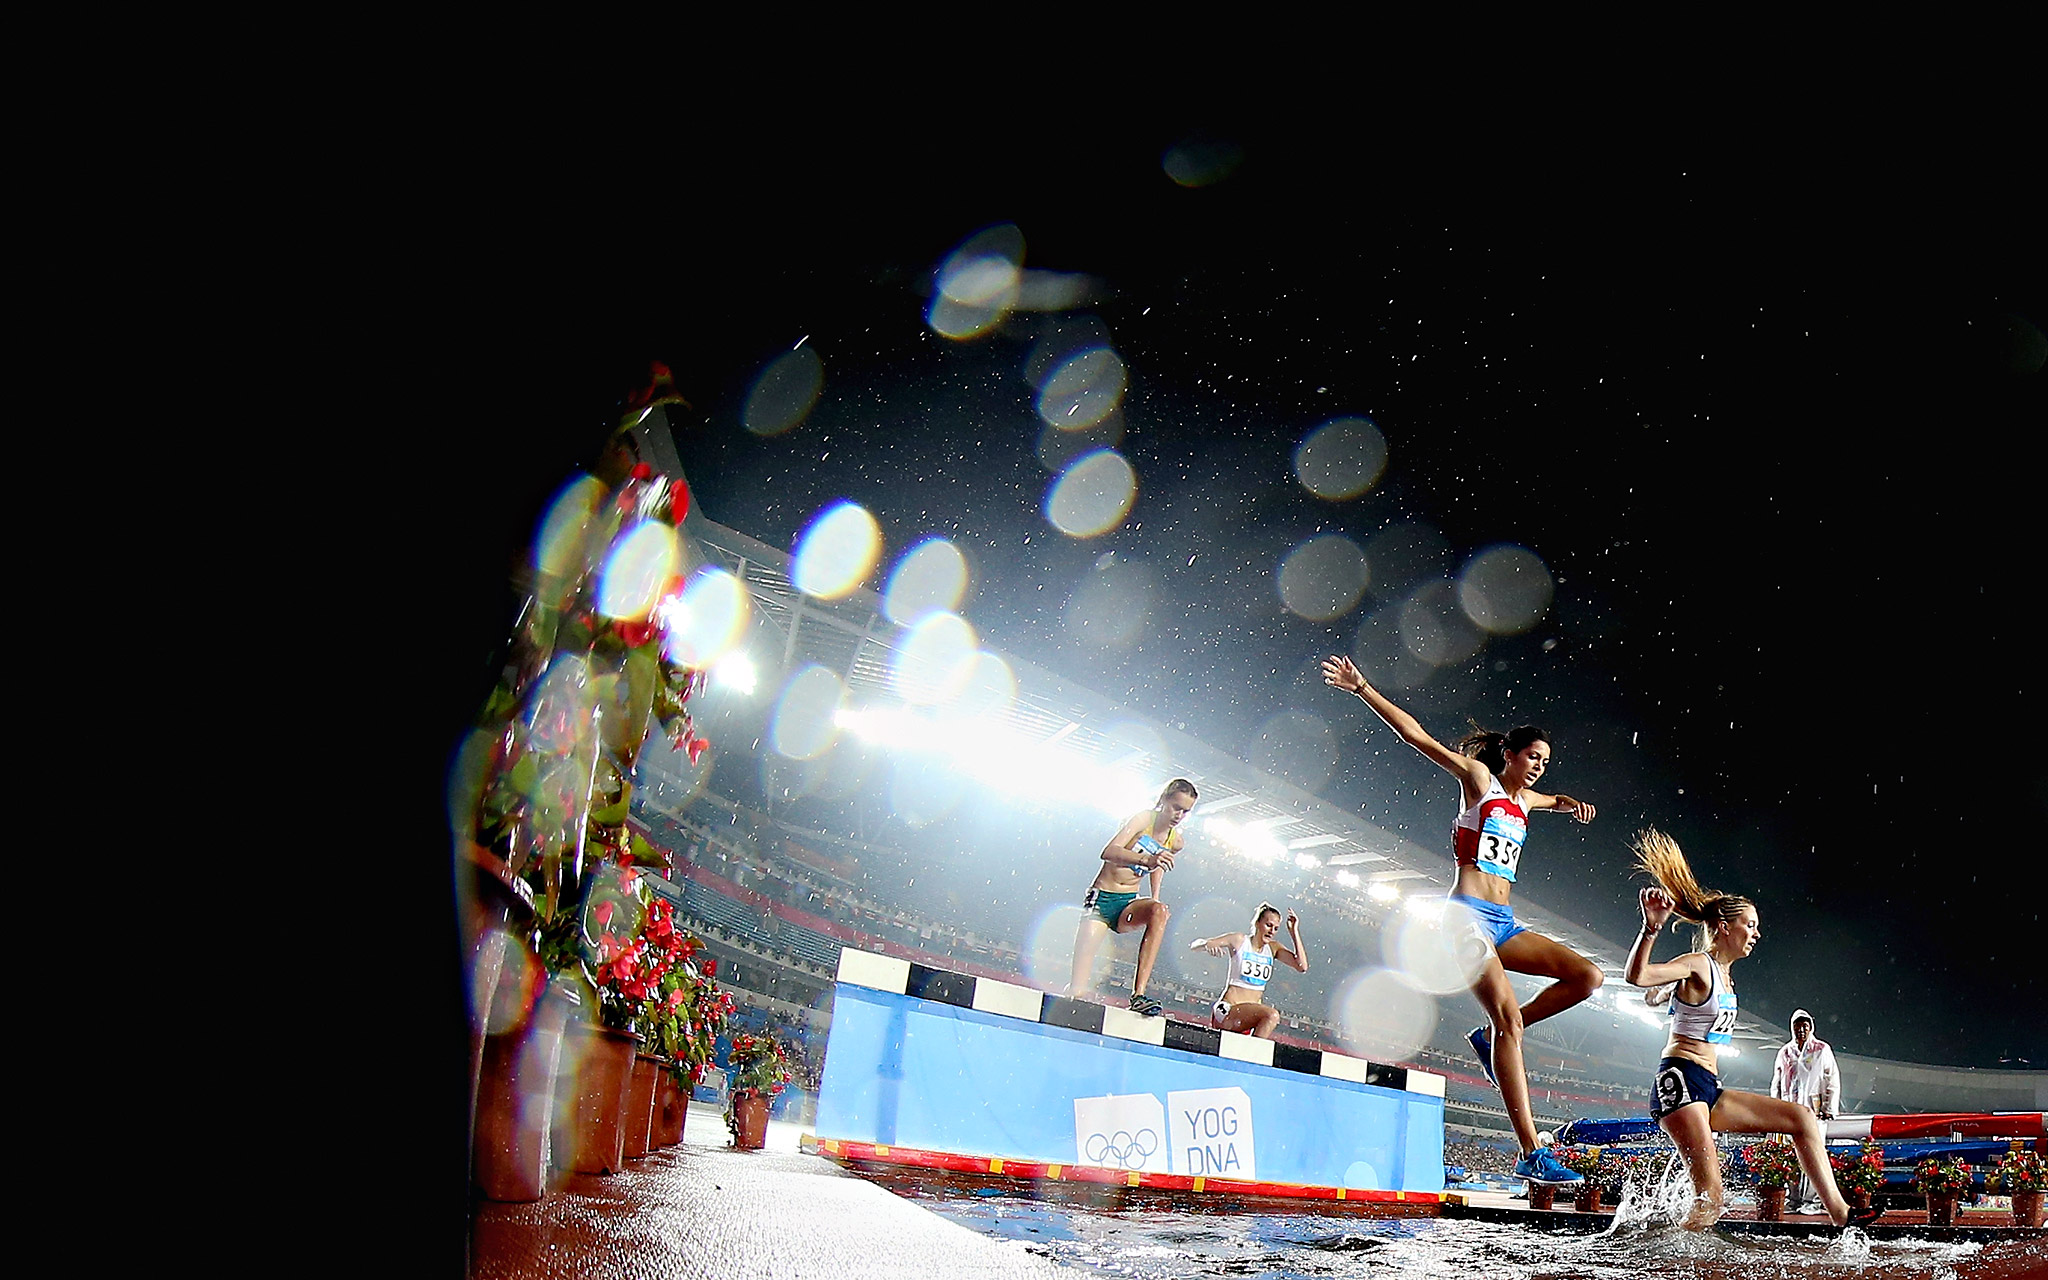 The second Summer Youth Olympic Games made a splash at the Nanjing Olympic Sports Center in China.